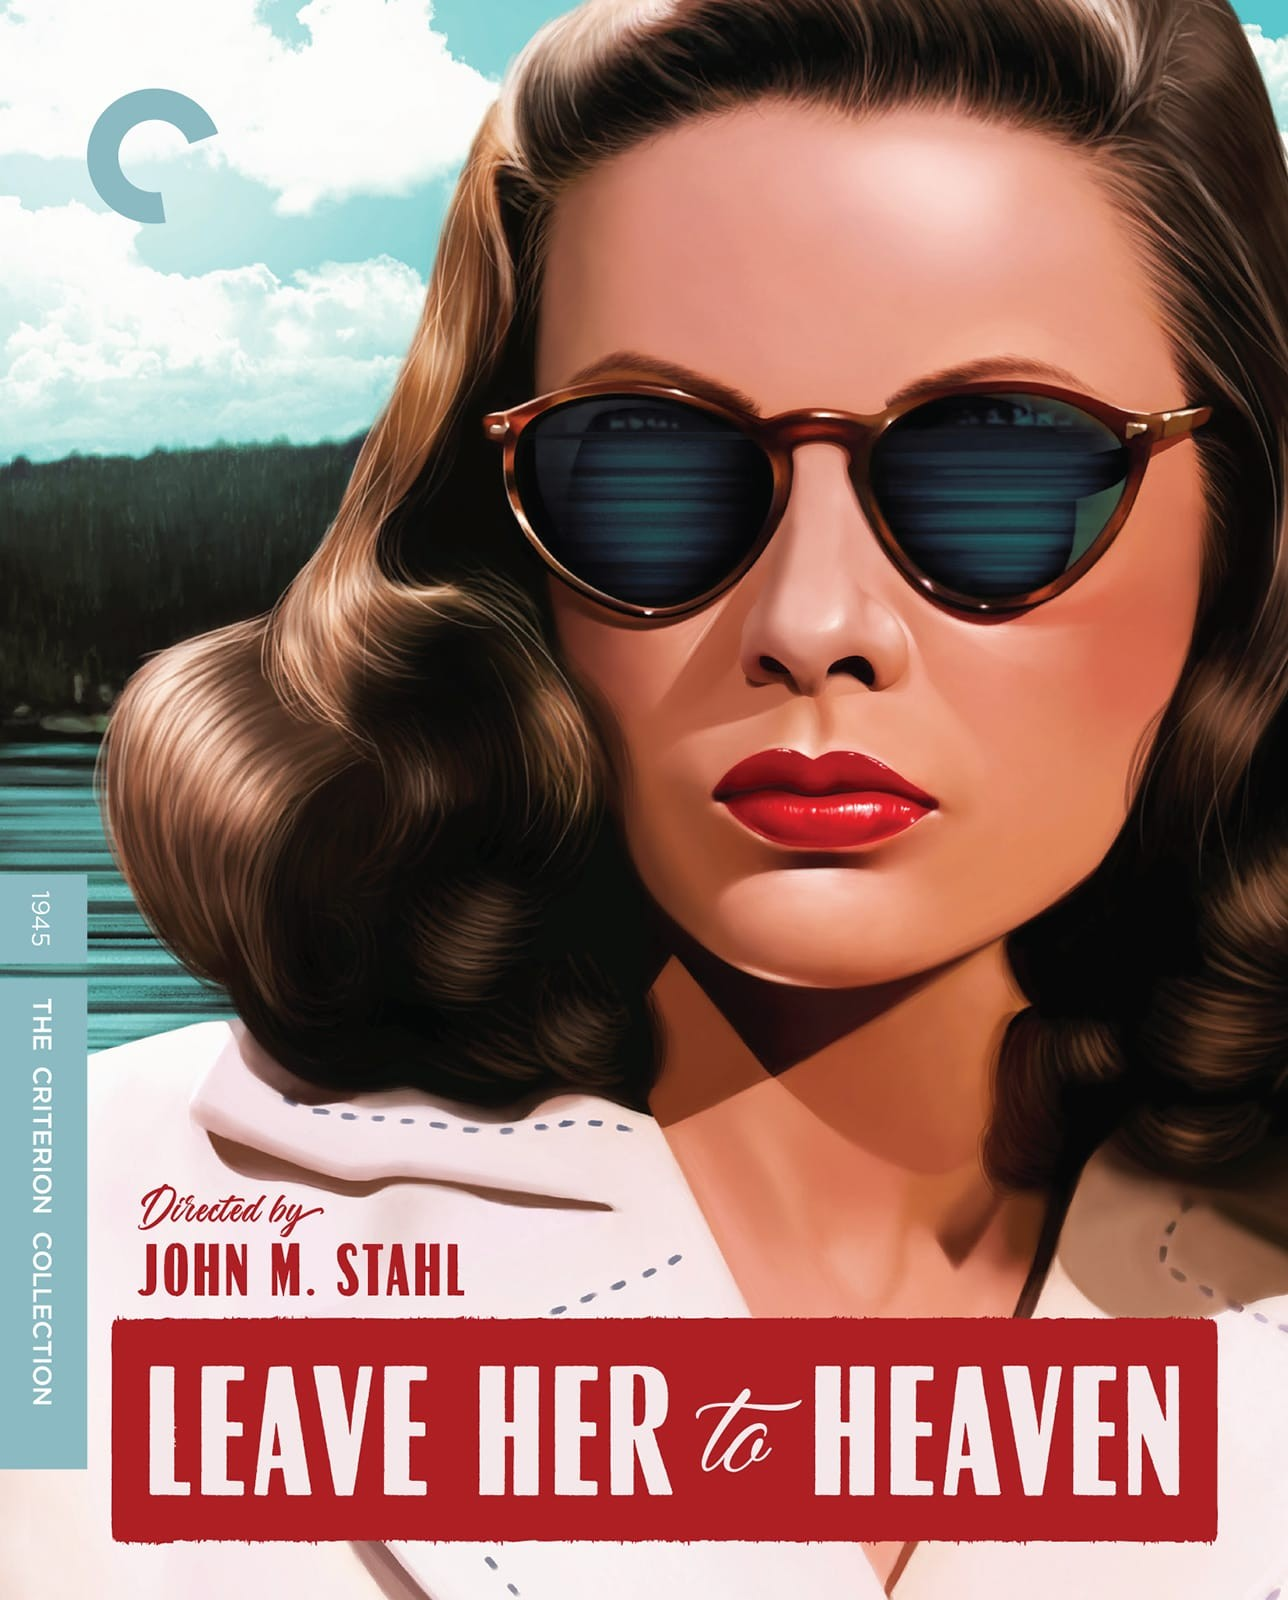 Leave Her to Heaven (1945) | The Criterion Collection